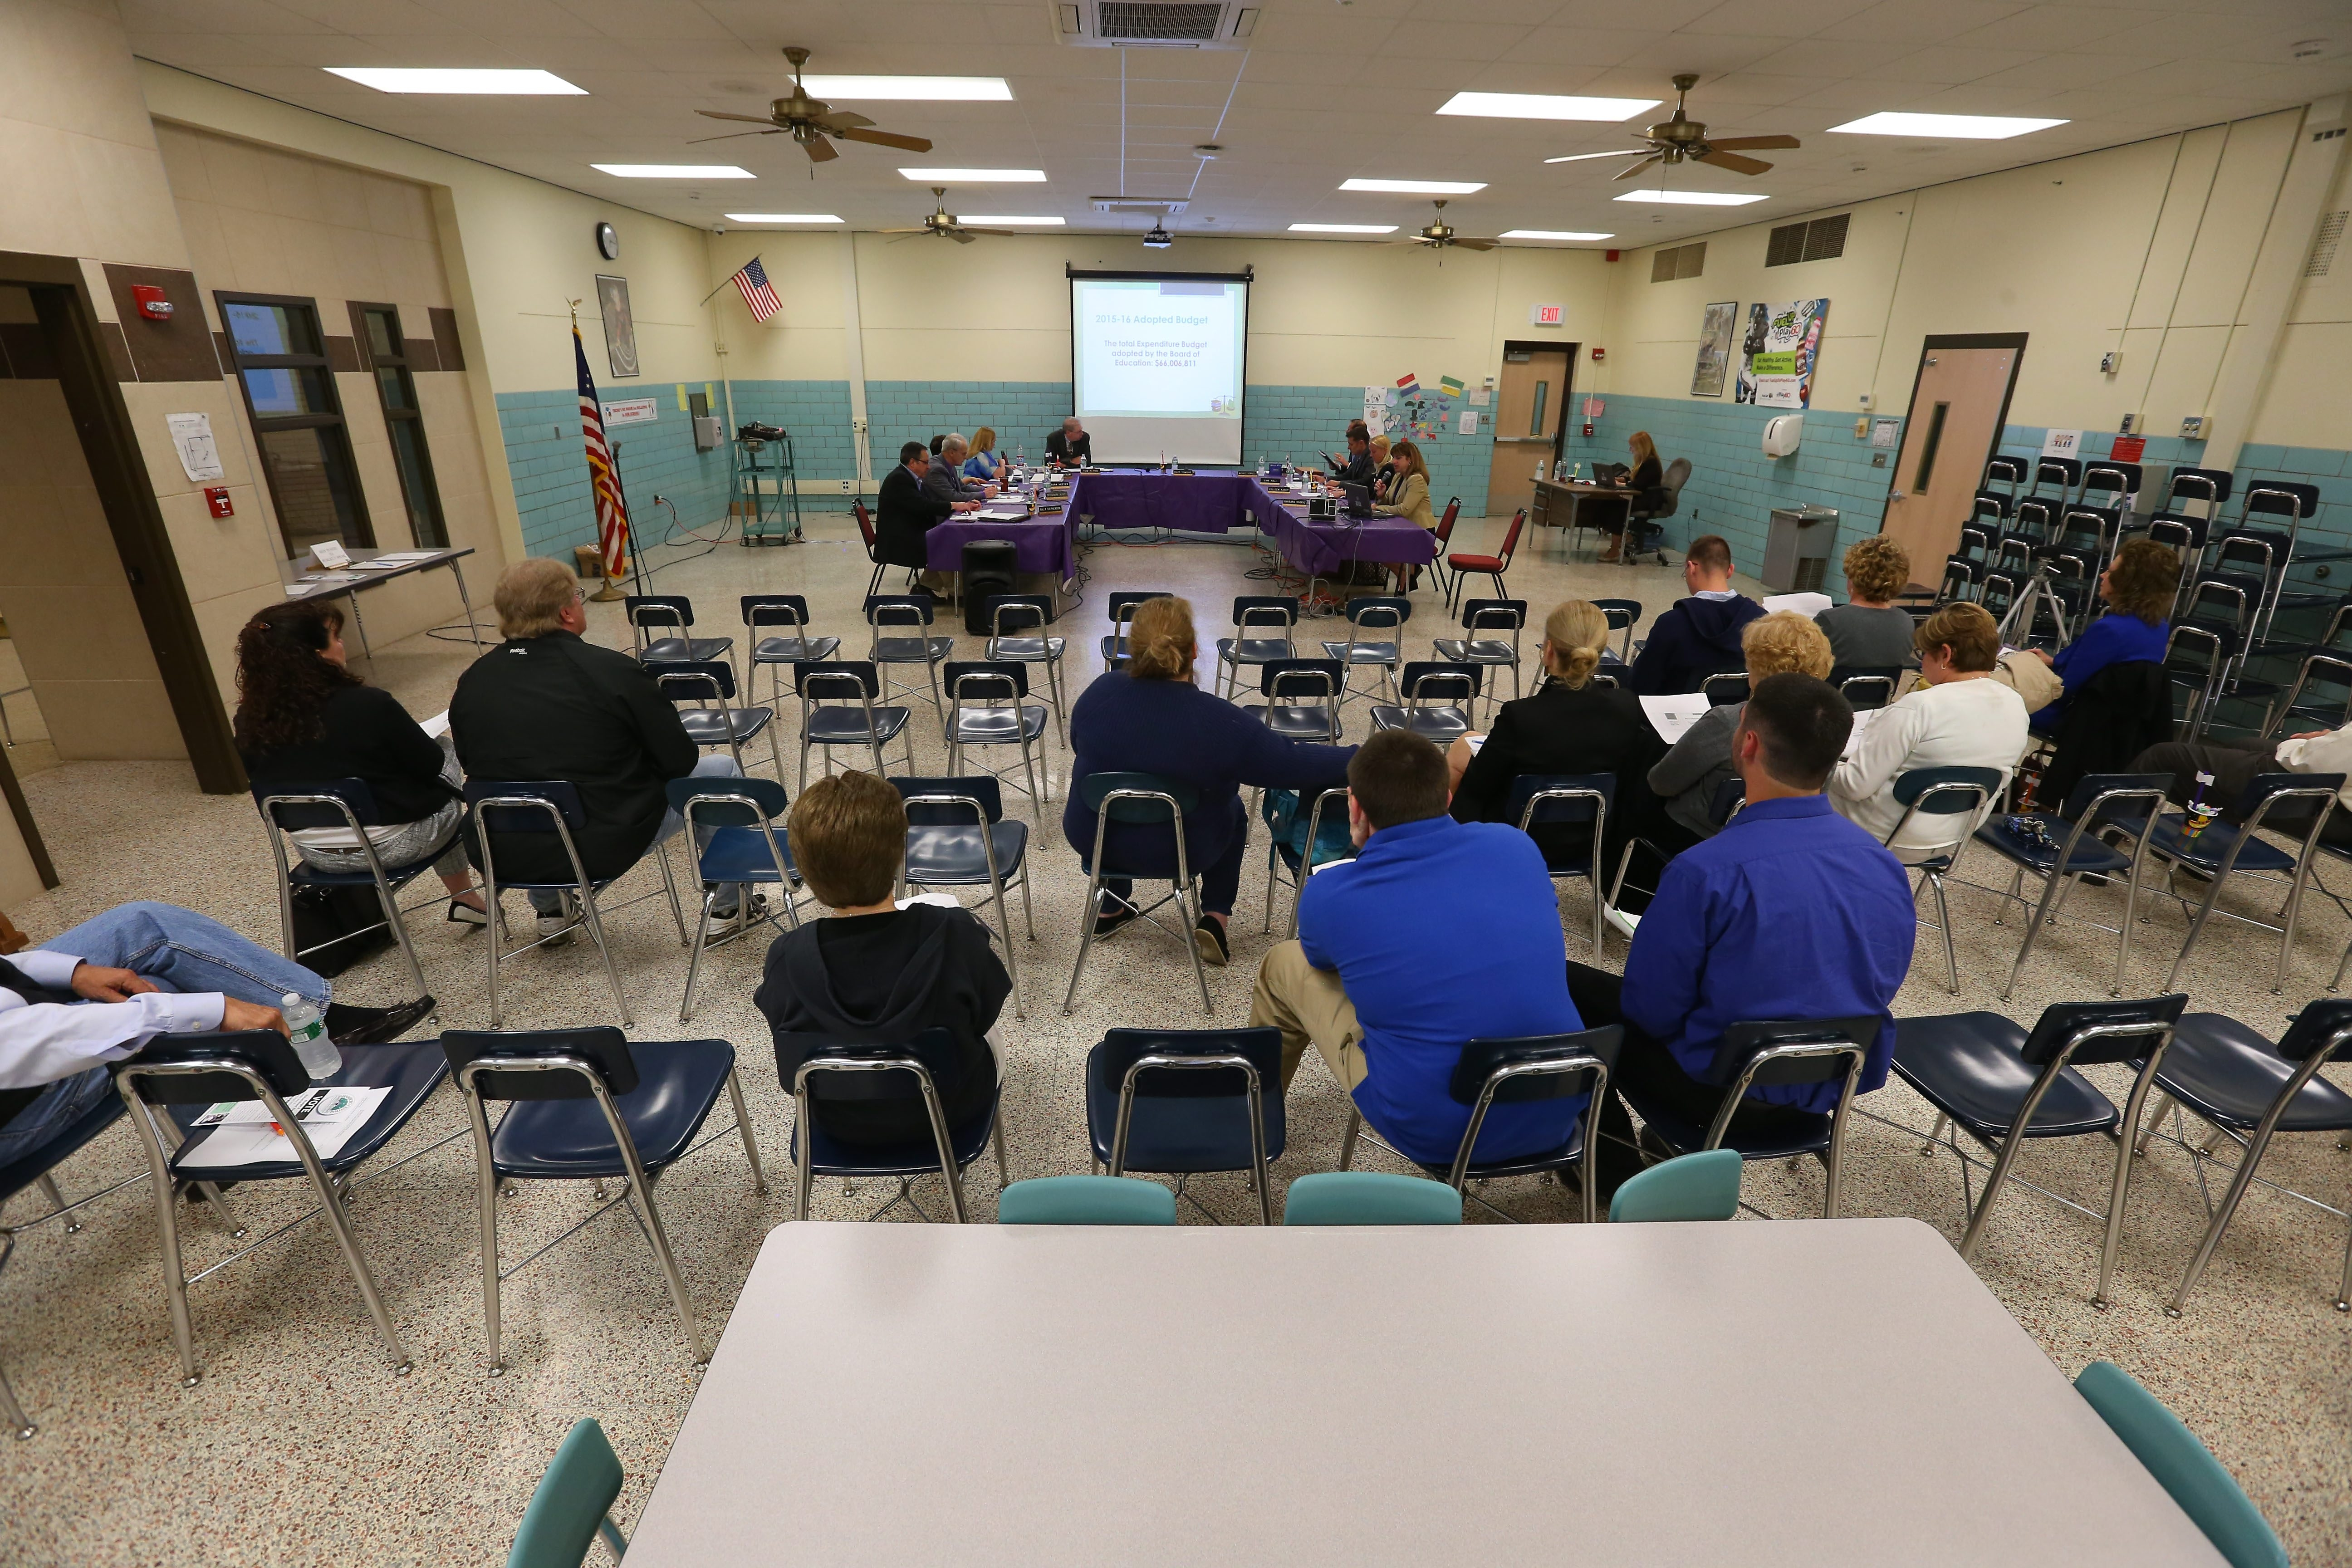 Only a sparse crowd turned out for a Hamburg School Board meeting earlier this month at Armor Elementary School.